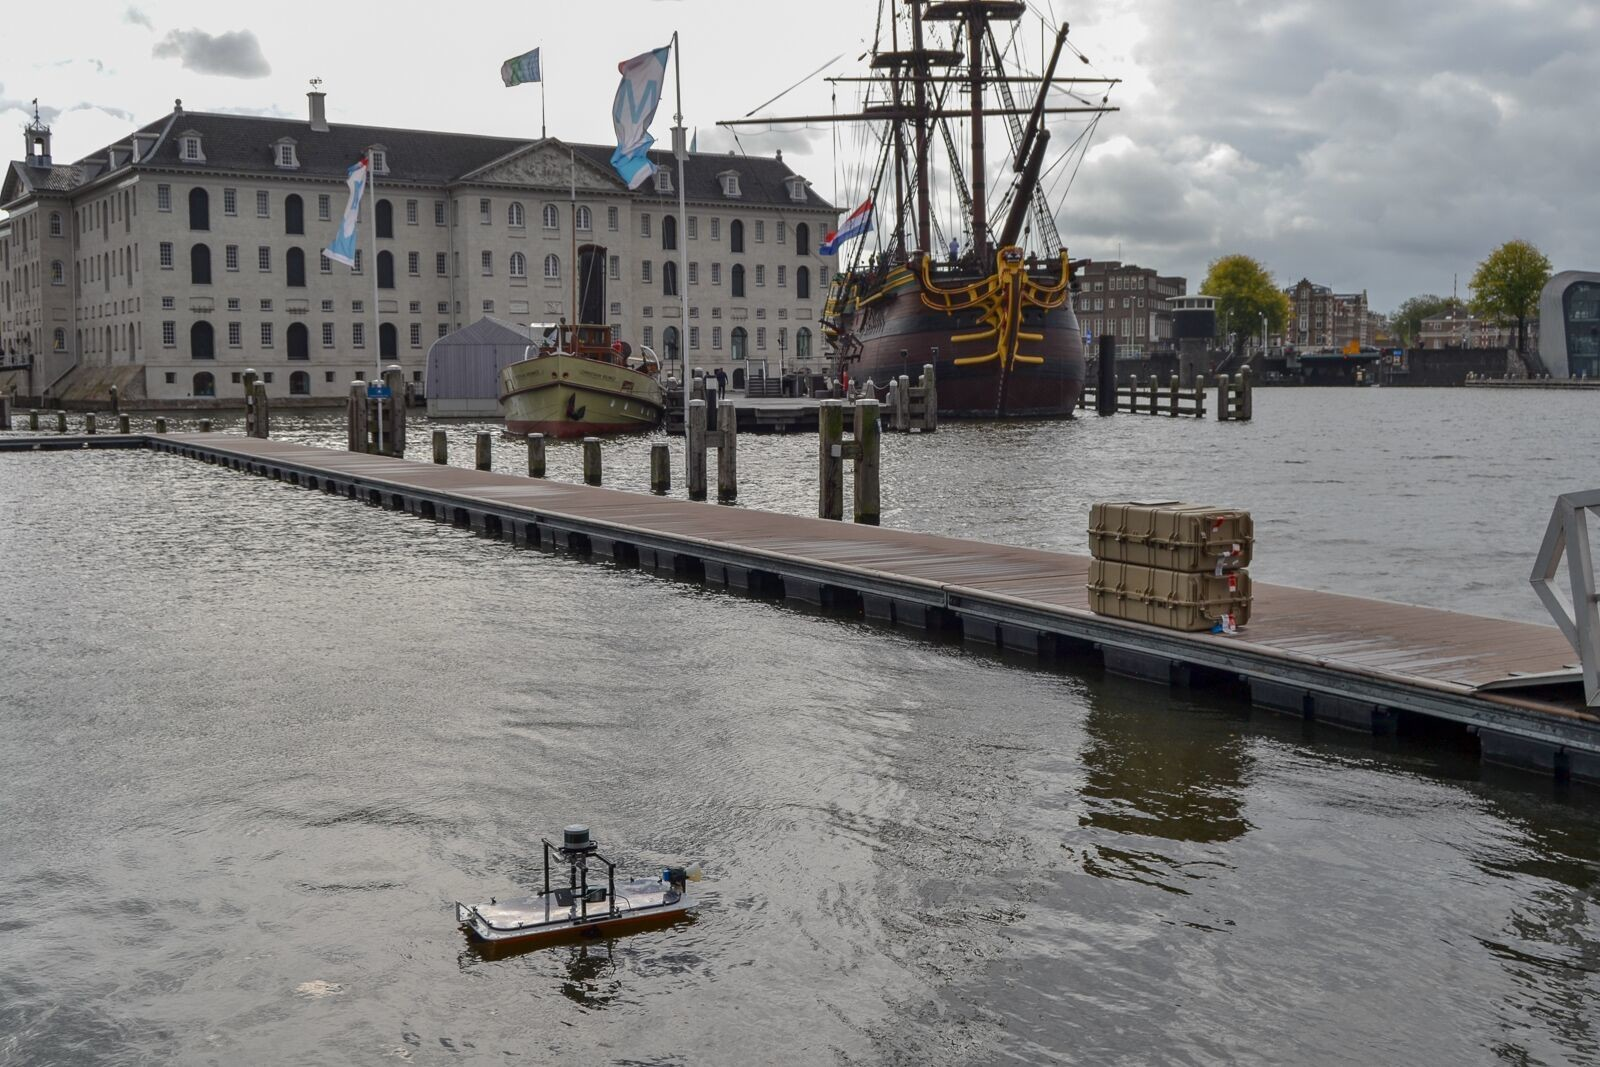 Researchers are testing miniature versions of autonomous boats on Amsterdam's canals.